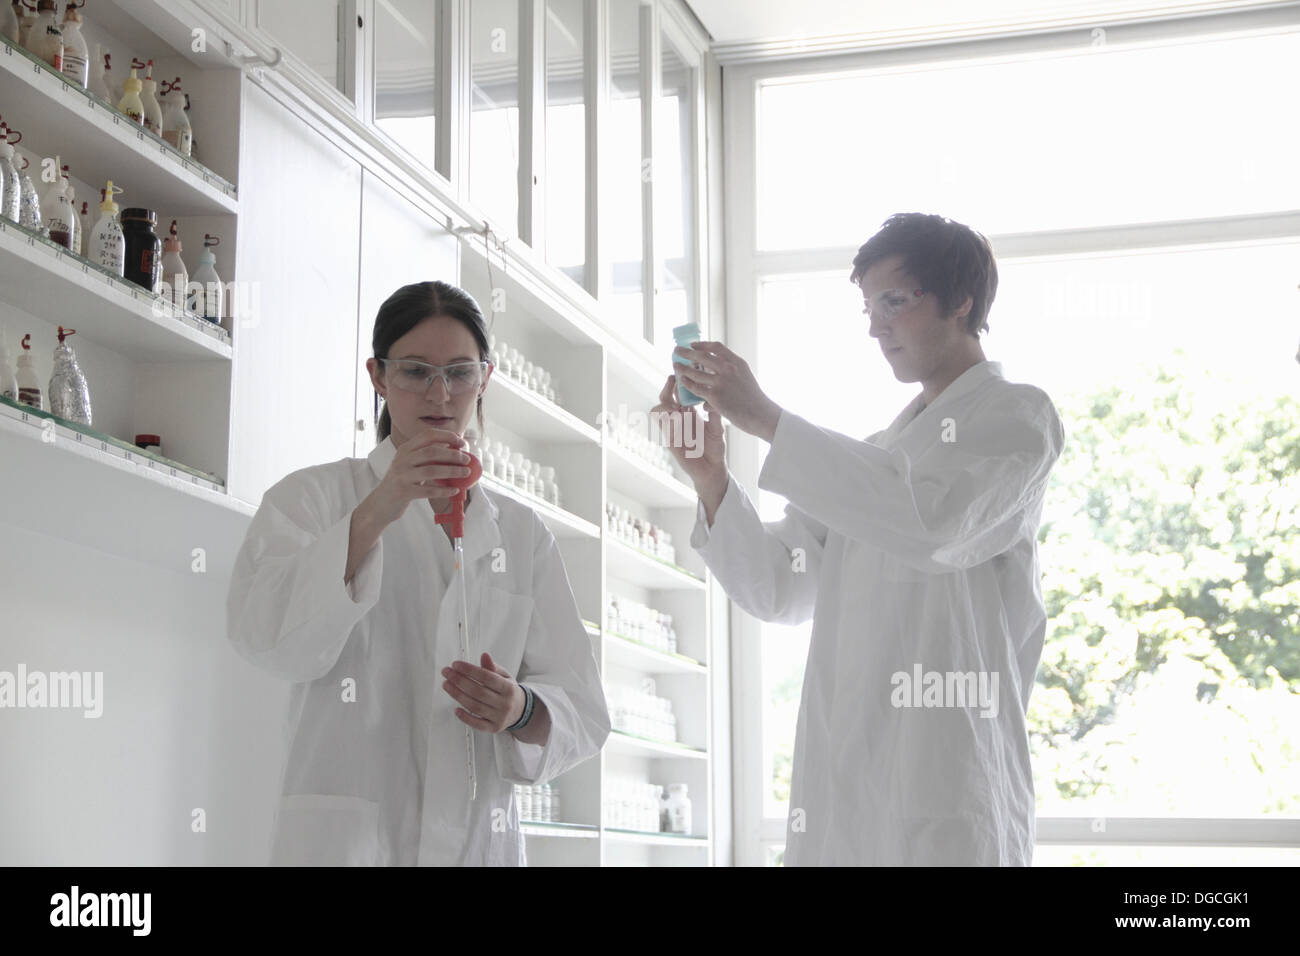 Chemistry students in lab - Stock Image